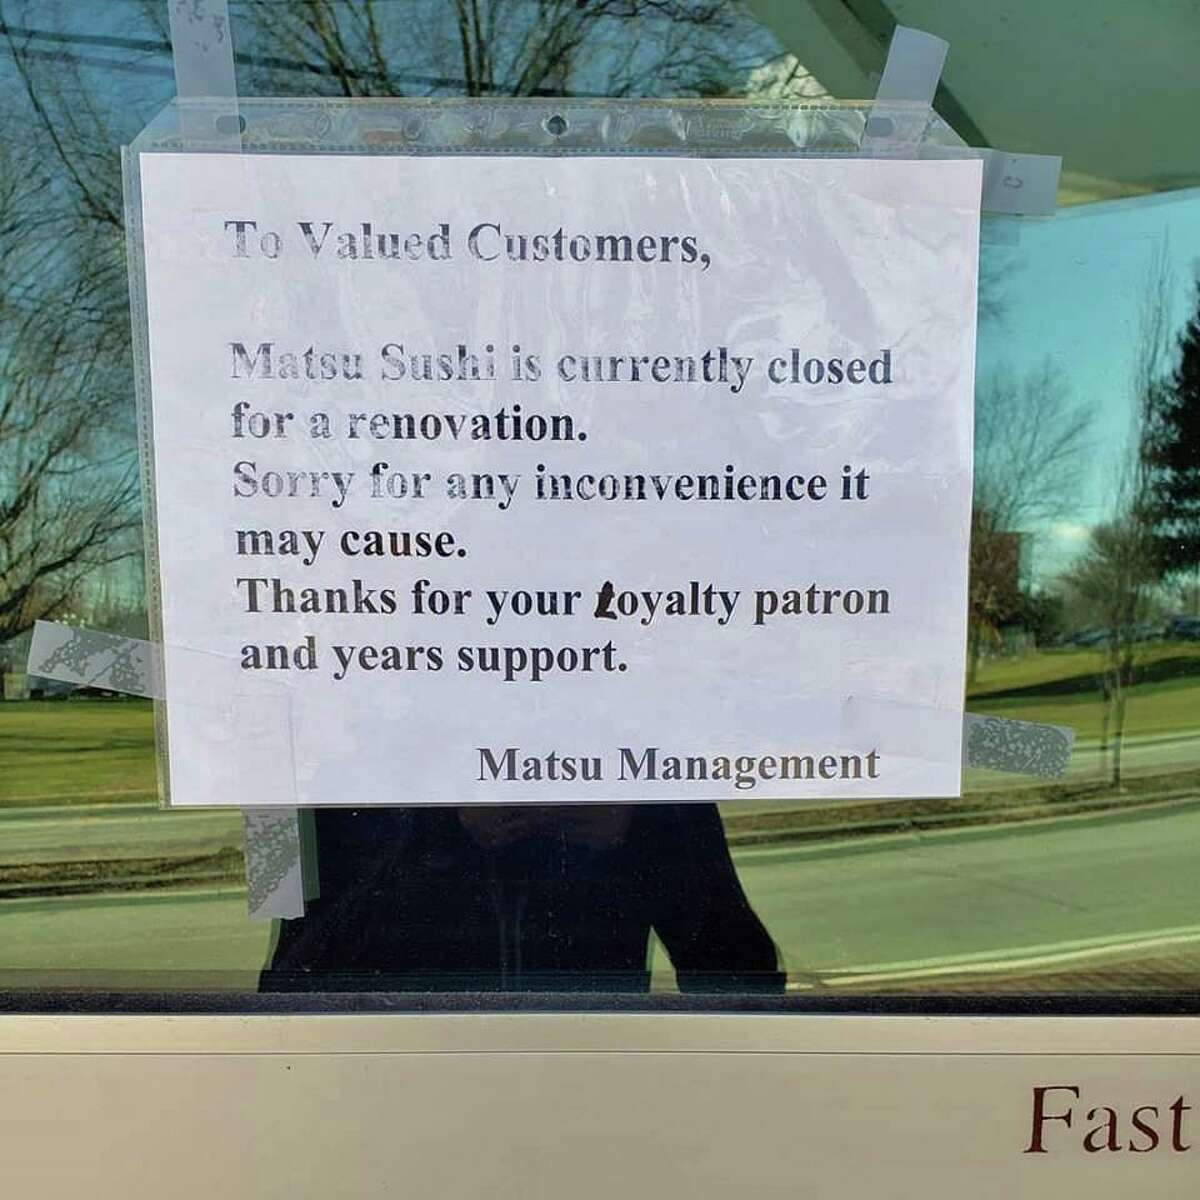 A sign in front of Matsu Sushi on April 1, 2019, says the restaurant is closed for renovations.